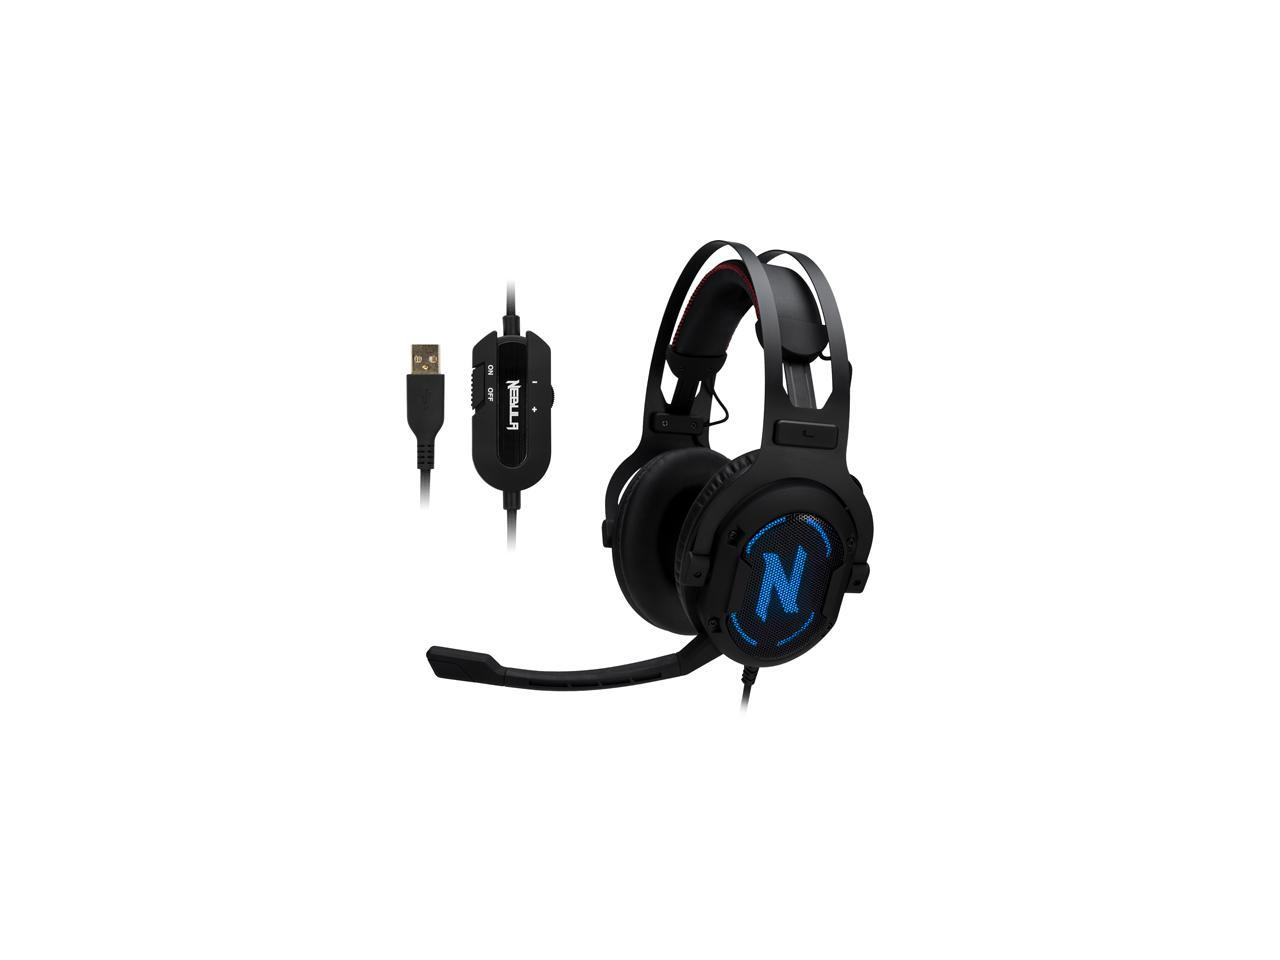 7.1 Surround Sound Gaming Headset, Rgb Headphones, Memory Foam Ear - Wiring Diagram Of Rosewill Usb Headset